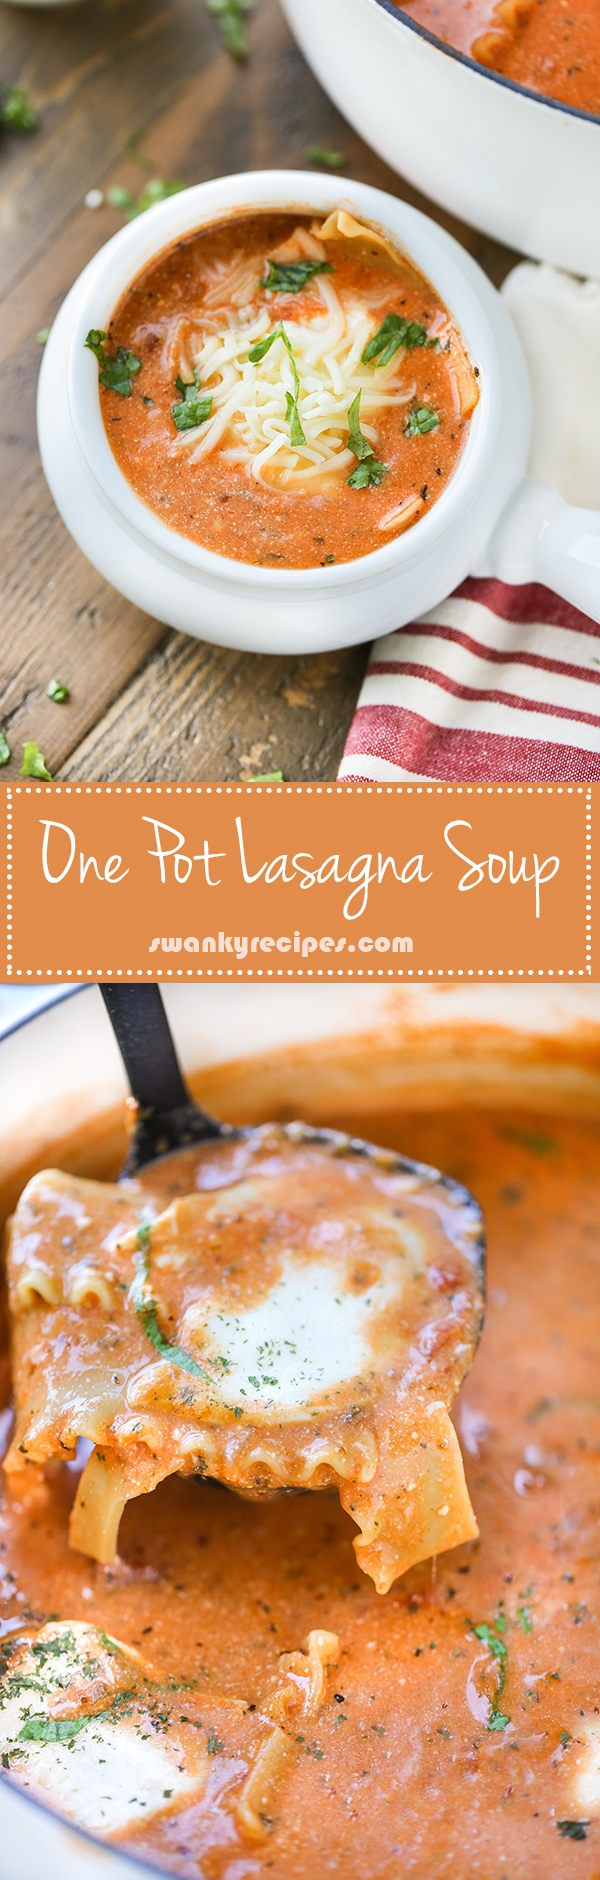 One Pot Lasagna Soup - pinterest